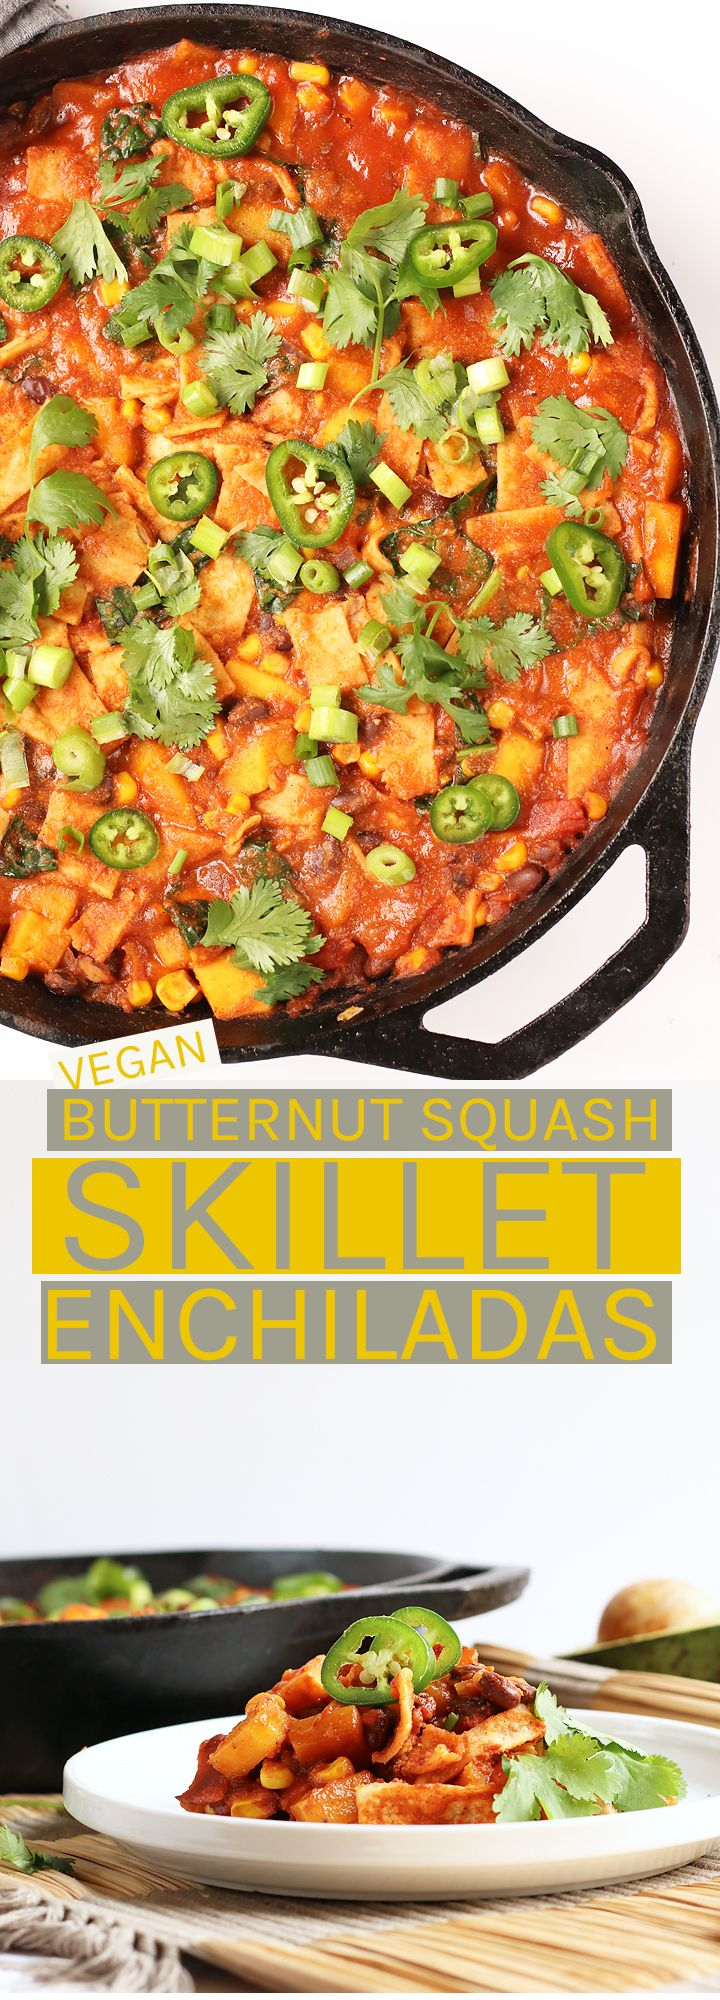 Make dinner easy with these vegan and gluten-free Butternut Squash Skillet Enchiladas. 1 pot, under 30 minutes!